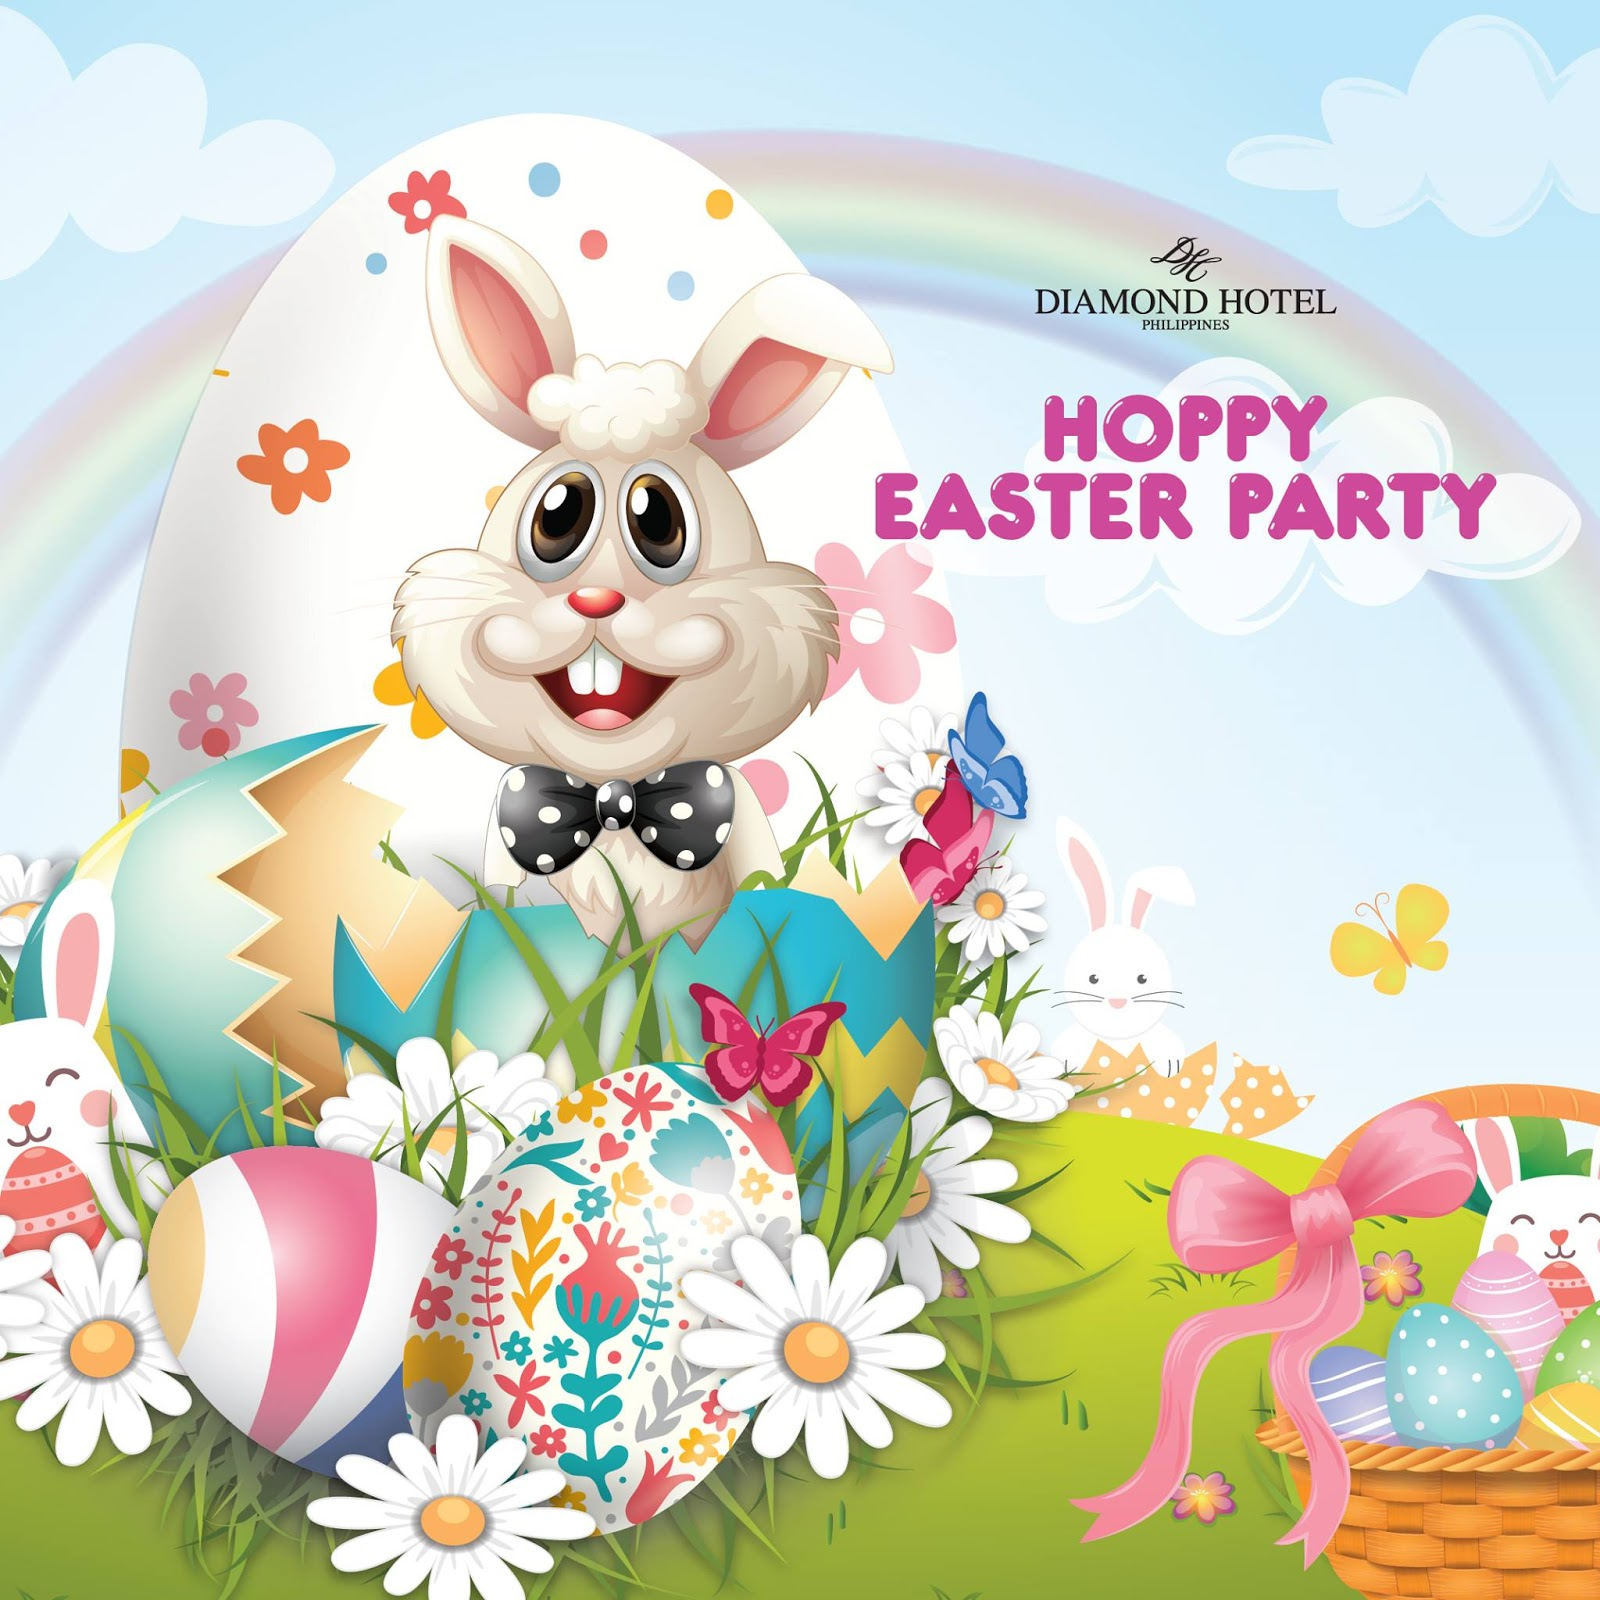 Easter 2017 egg hunting events in metro manila a day in the life join the easter activities and spend the day hopping from one fun activity to the next kids in their easter inspired costume will get a chance to win negle Image collections